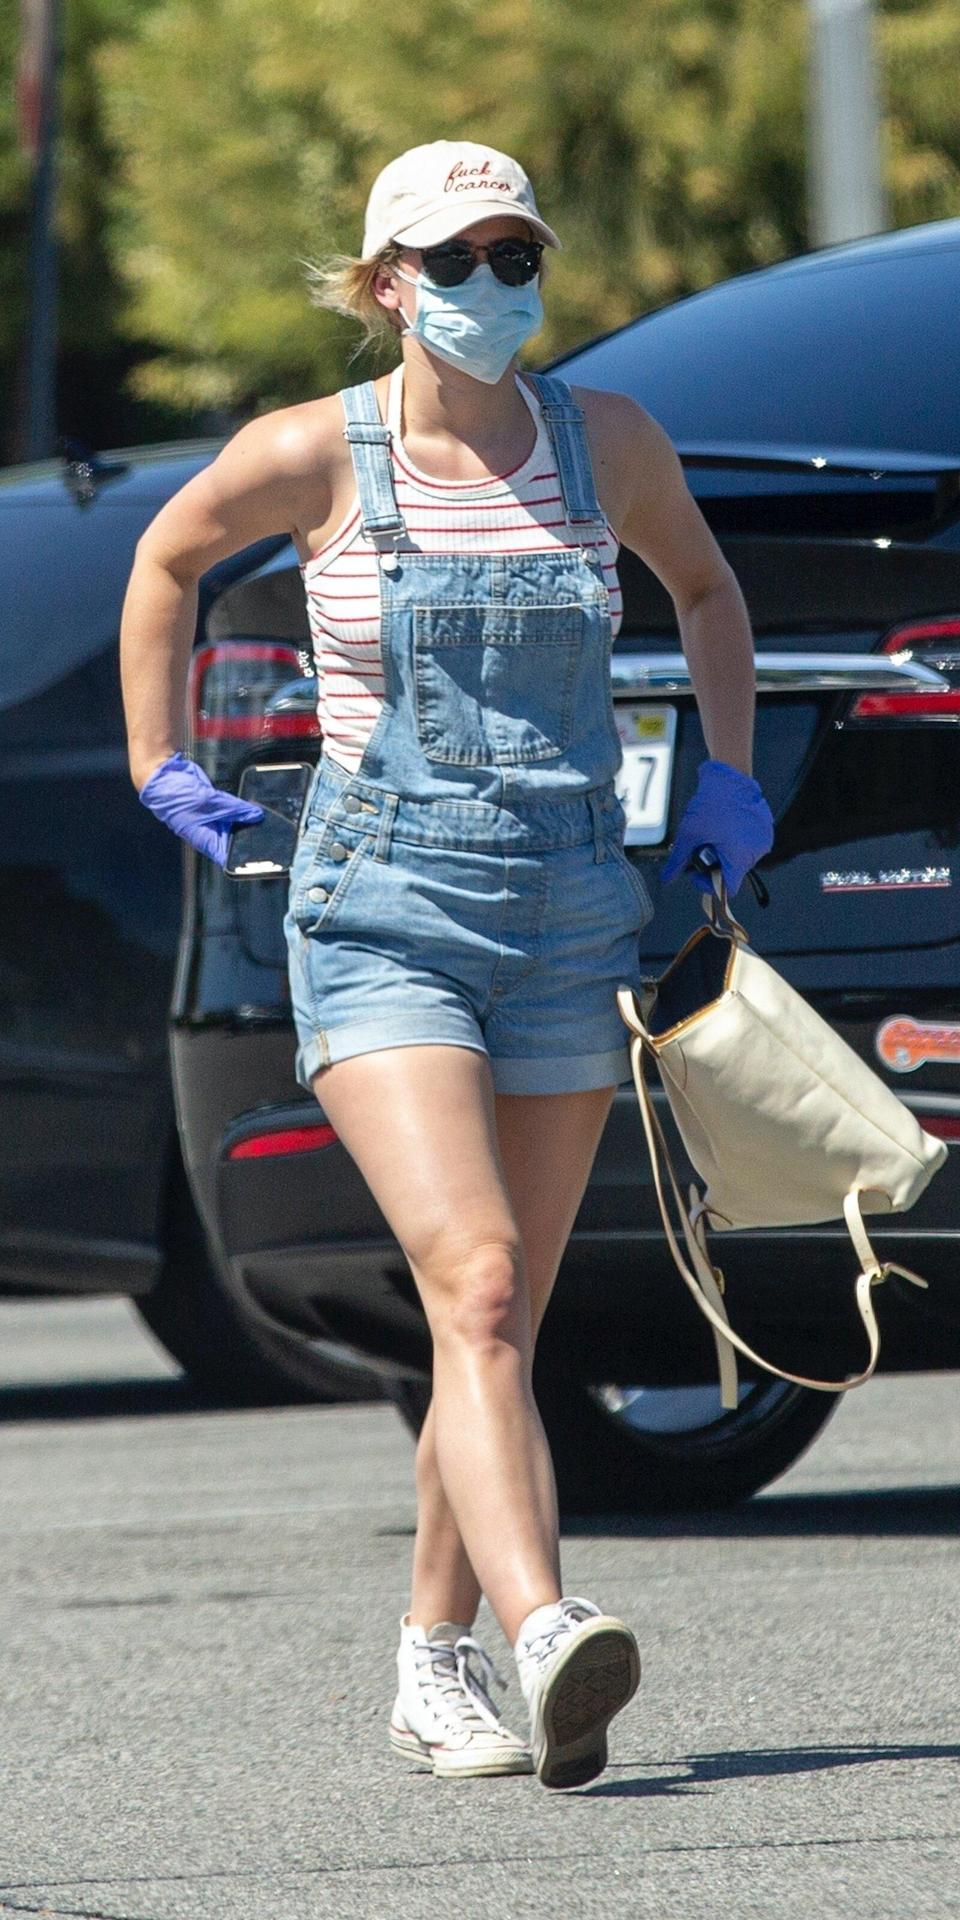 """<p>Okay, so Lili Reinhart may be onto something with her short denim overalls look (<strong>Shop similar:</strong> $98; <a href=""""https://click.linksynergy.com/deeplink?id=93xLBvPhAeE&mid=42352&murl=https%3A%2F%2Fwww.shopbop.com%2Fvintage-shortall-levis%2Fvp%2Fv%3D1%2F1561216336.htm%3F&u1=IS%2CLiliReinhart%2Canesta%2C%2CIMA%2C3545505%2C202005%2CI"""" rel=""""nofollow noopener"""" target=""""_blank"""" data-ylk=""""slk:shopbop.com"""" class=""""link rapid-noclick-resp"""">shopbop.com</a>). Overalls are more structured than sweats but definitely not as restricting as jeans. Plus, they're practically the official uniform of crafting or gardening, which is all most of us are doing anyway. </p>"""